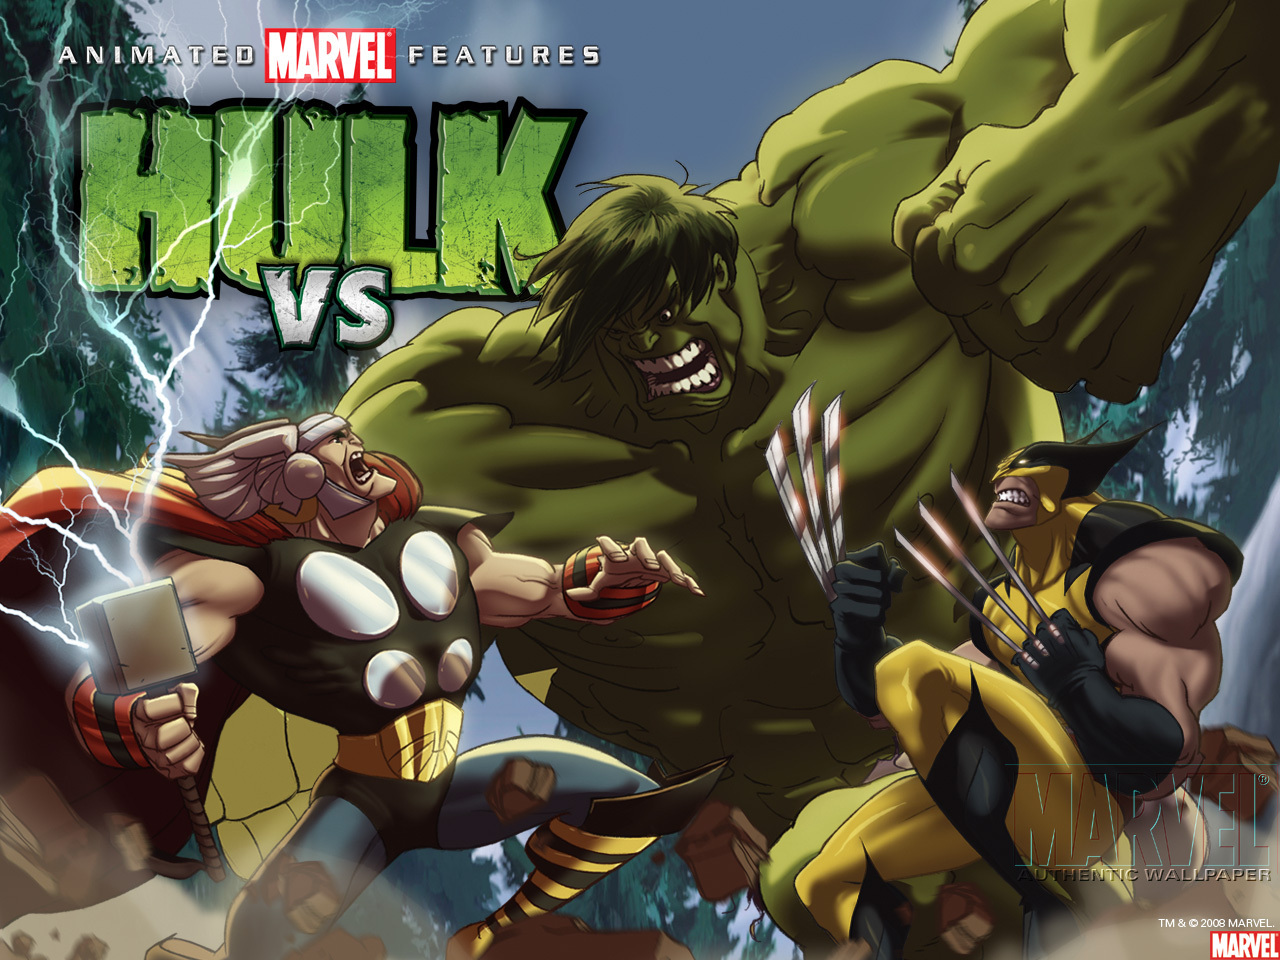 Hulk - The Incredible Hulk Wallpaper (14044497) - Fanpop fanclubs